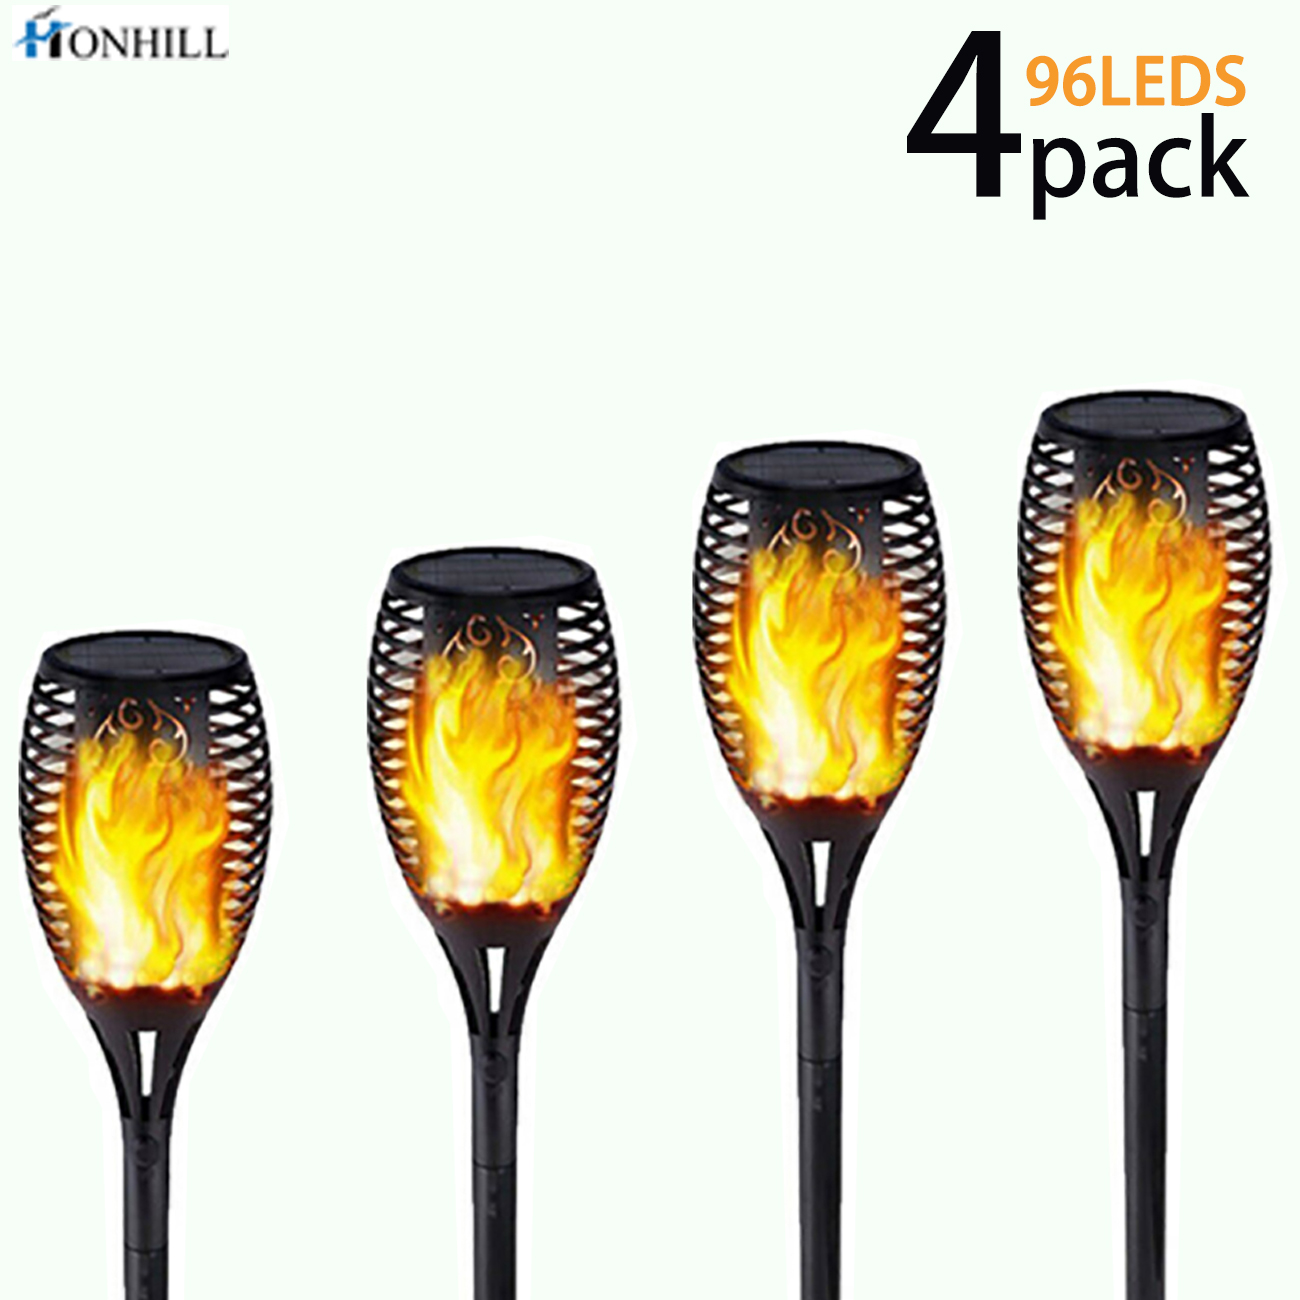 Honhill 33/96 LED Garden Lighting Waterproof Solar Light Automatically Outdoor Landscape Lamp Flame Lights